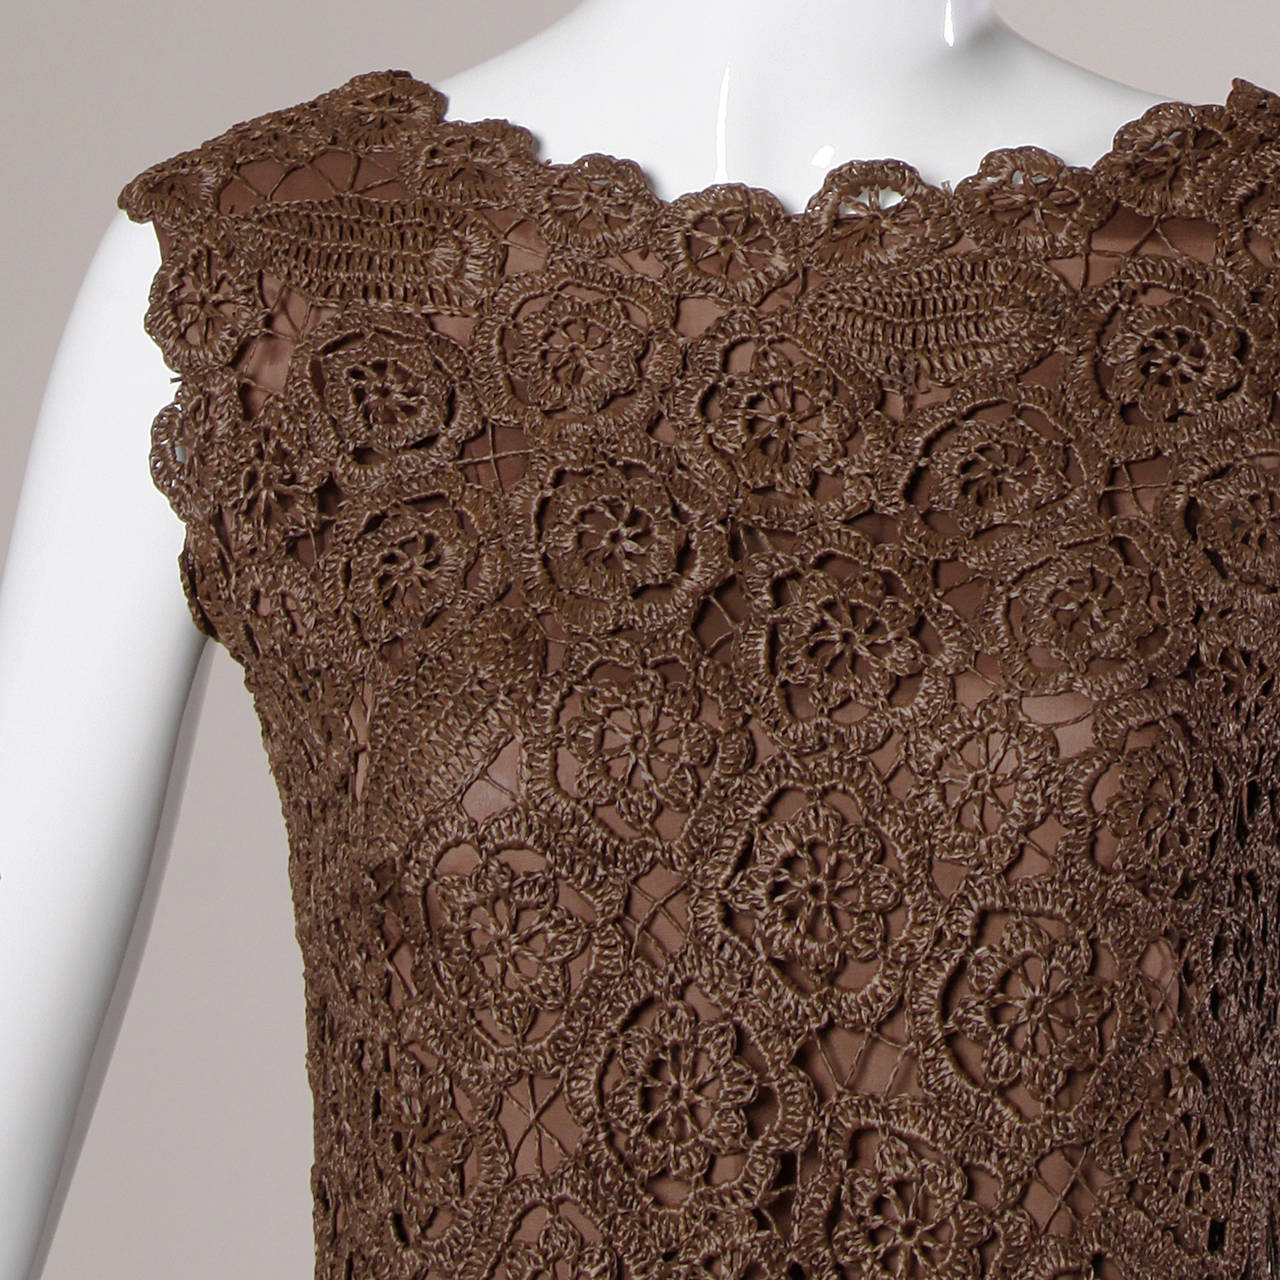 Hand crocheted brown raffia shift dress with a scalloped design and metal zipper.